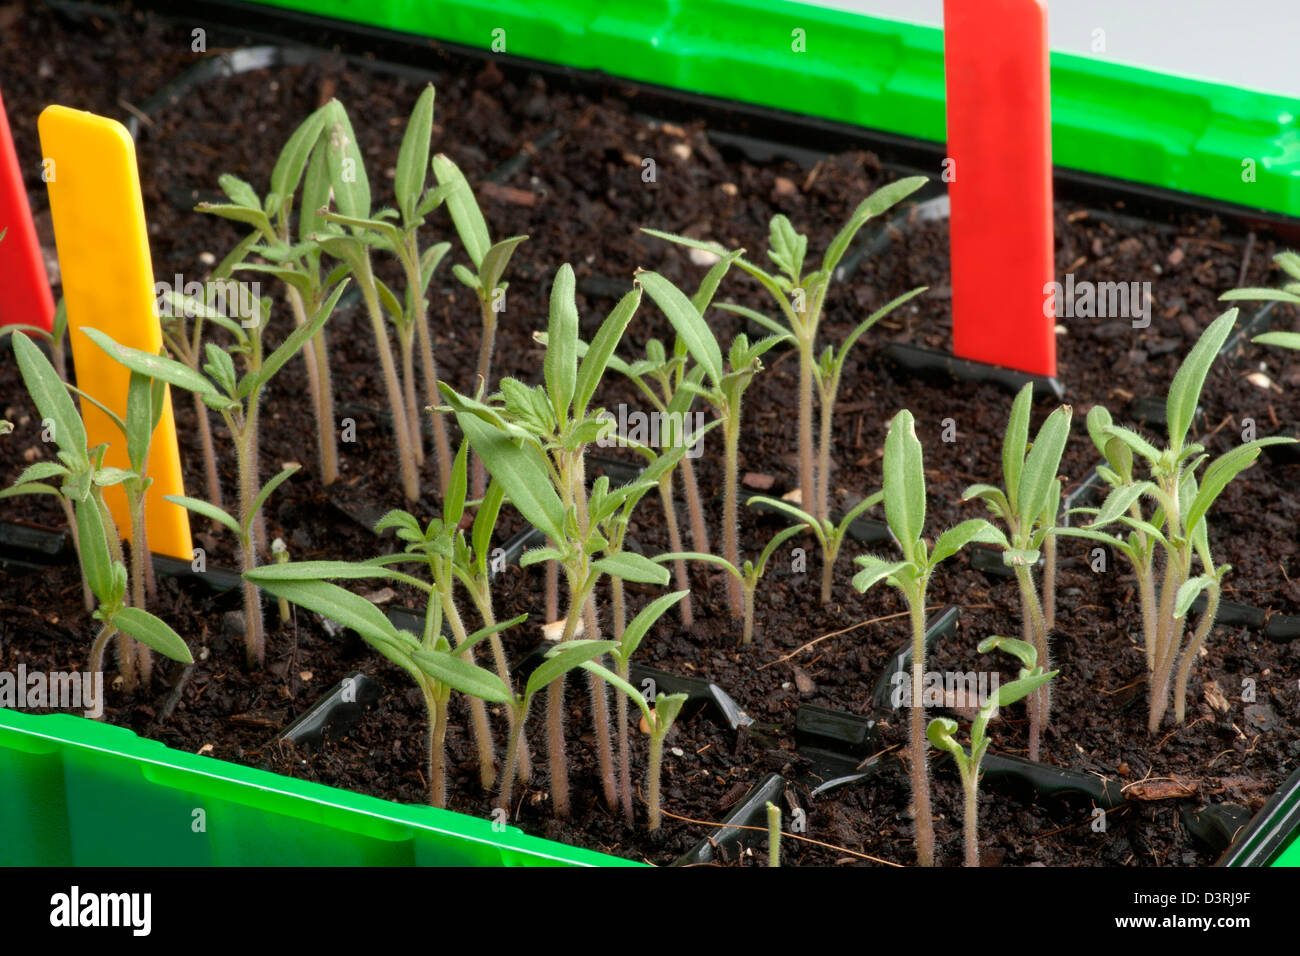 Upbringing seedling - Stock Image